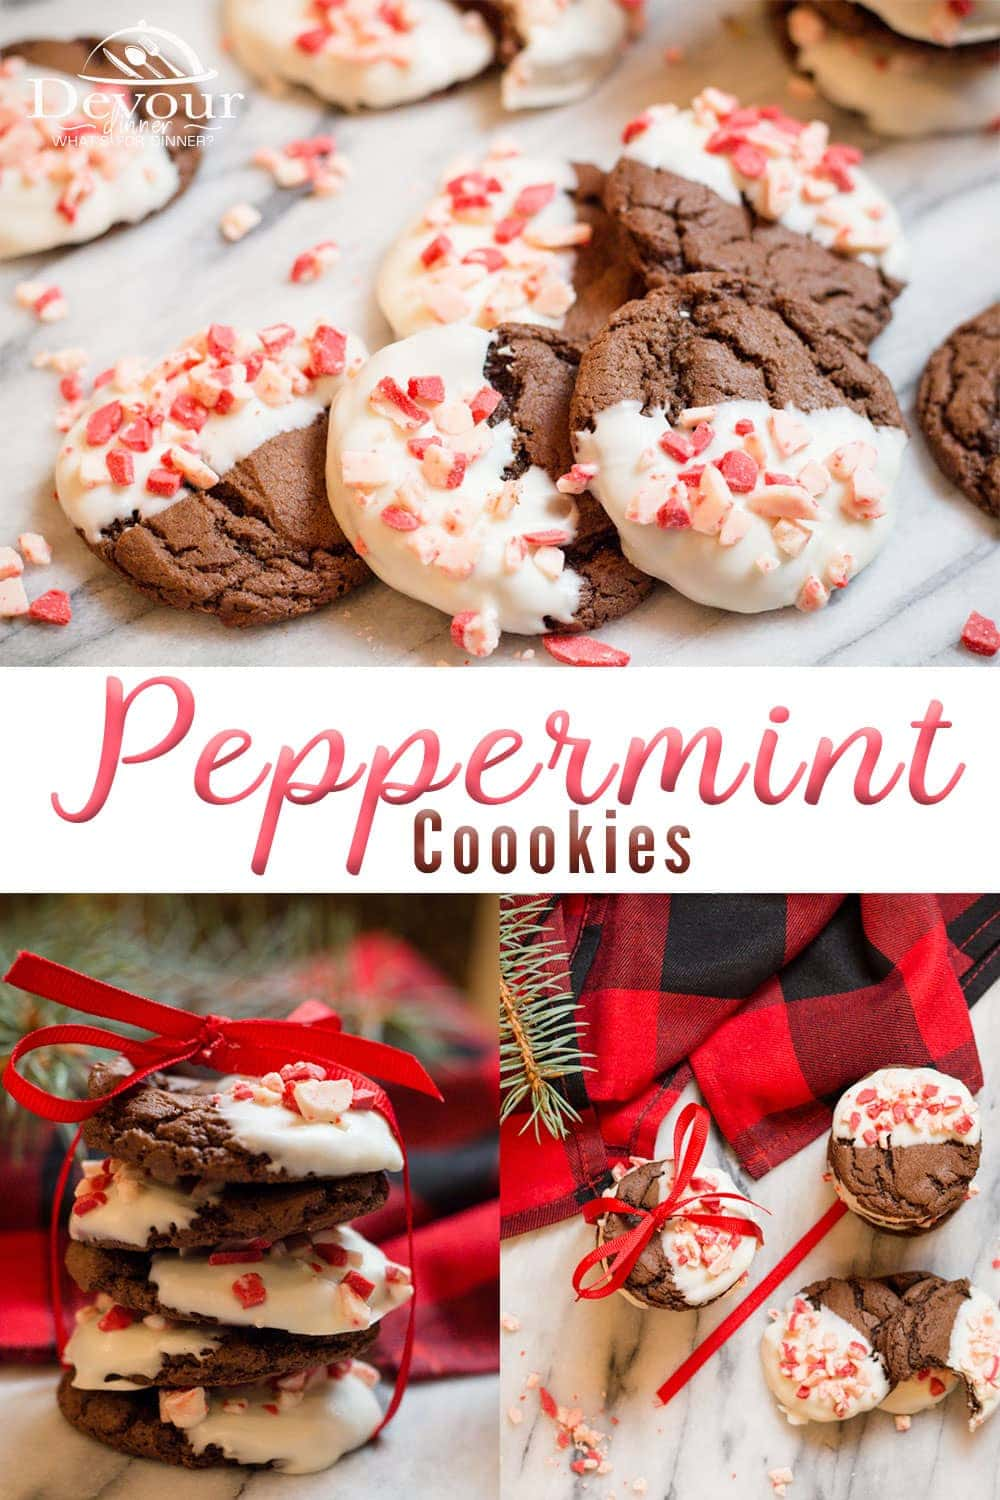 Chocolate Chewy Cookies are perfect dipped in white chocolate and sprinkled with Andes Peppermint Pieces. Holiday Cookie that is delicious! We love this cookie recipe that uses 3 ingredients, so many possibilities. #easycookierecipe #cookie #cookies #peppermintcookies #easyChristmascookies #chocolate #chocolatecookies #holidaycookies #holidaydessert #christmasdessert #Peppermint #andesmints #devourdinner #yum #easydessert #easyrecipe #easyprep #feedfeed #Recipes #recipe #inmykitchen #foodie